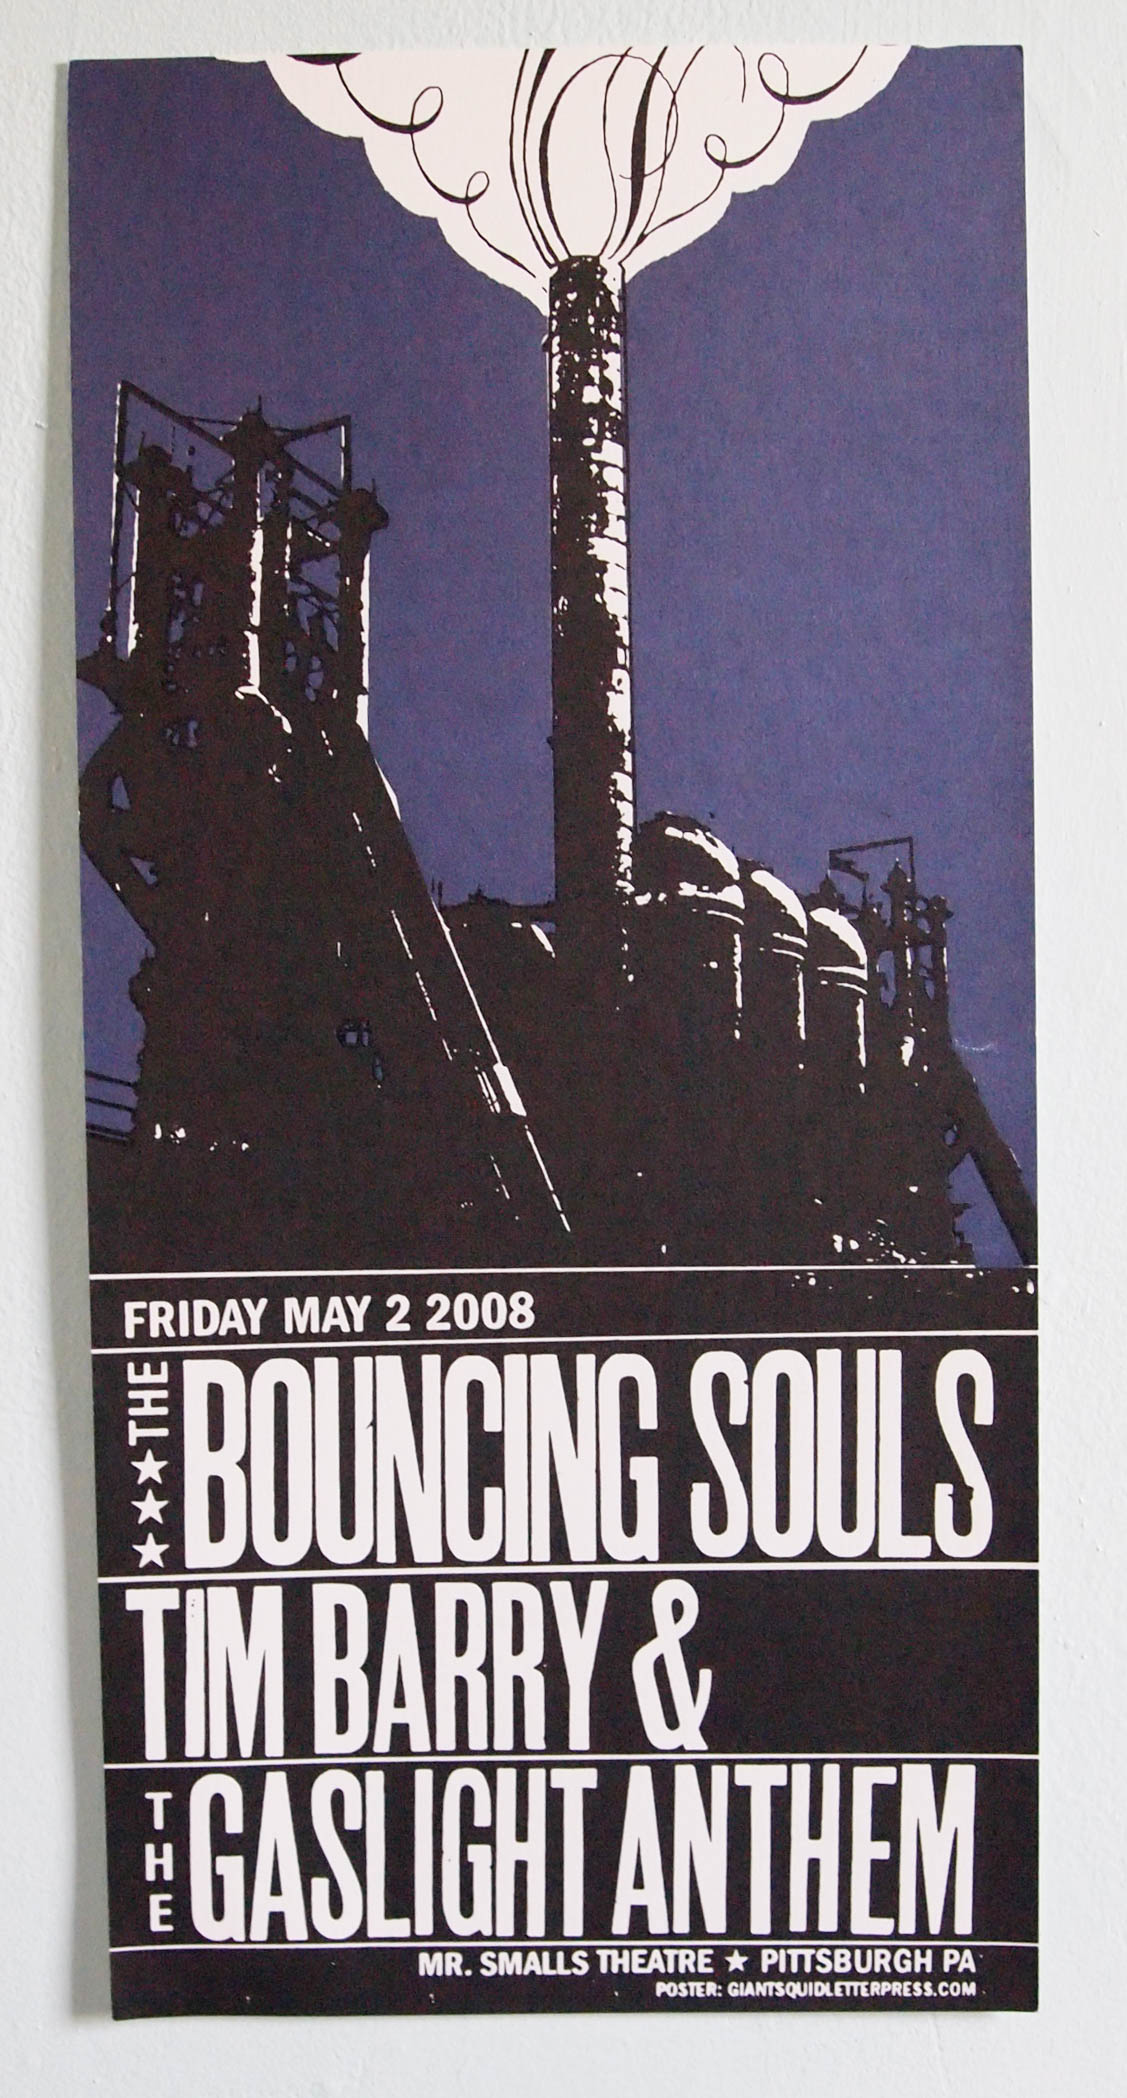 Bouncing Souls, Tim Barry and the Gaslight Anthem letterpress concert poster at Mr. Smalls in Pittsburg